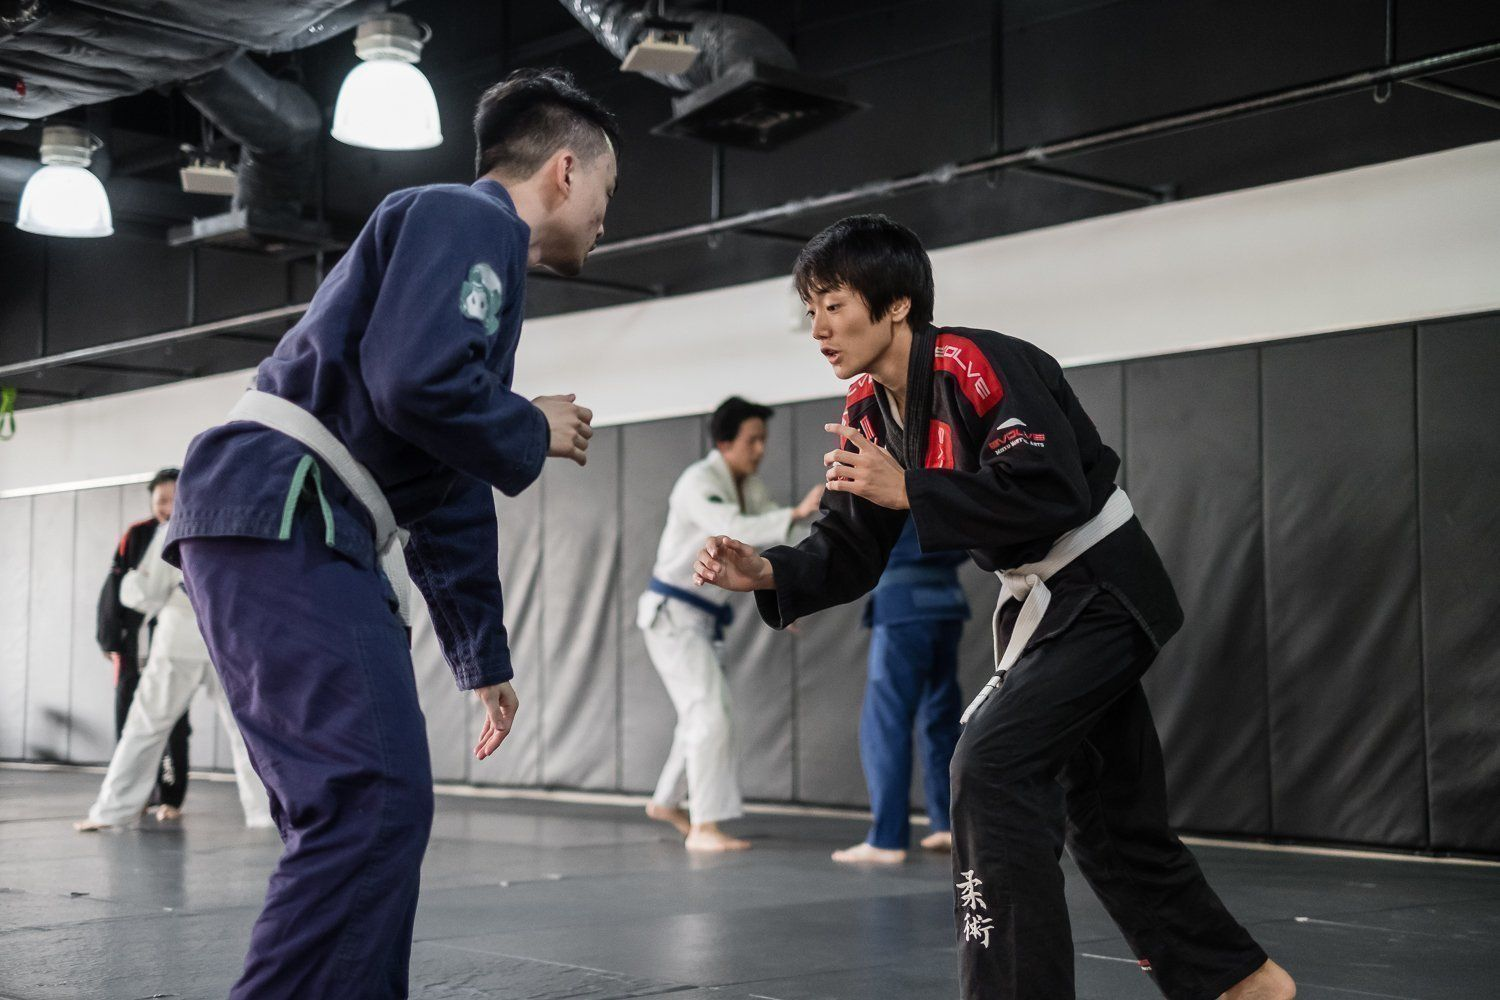 the 7 deadly sins of martial arts evolve daily